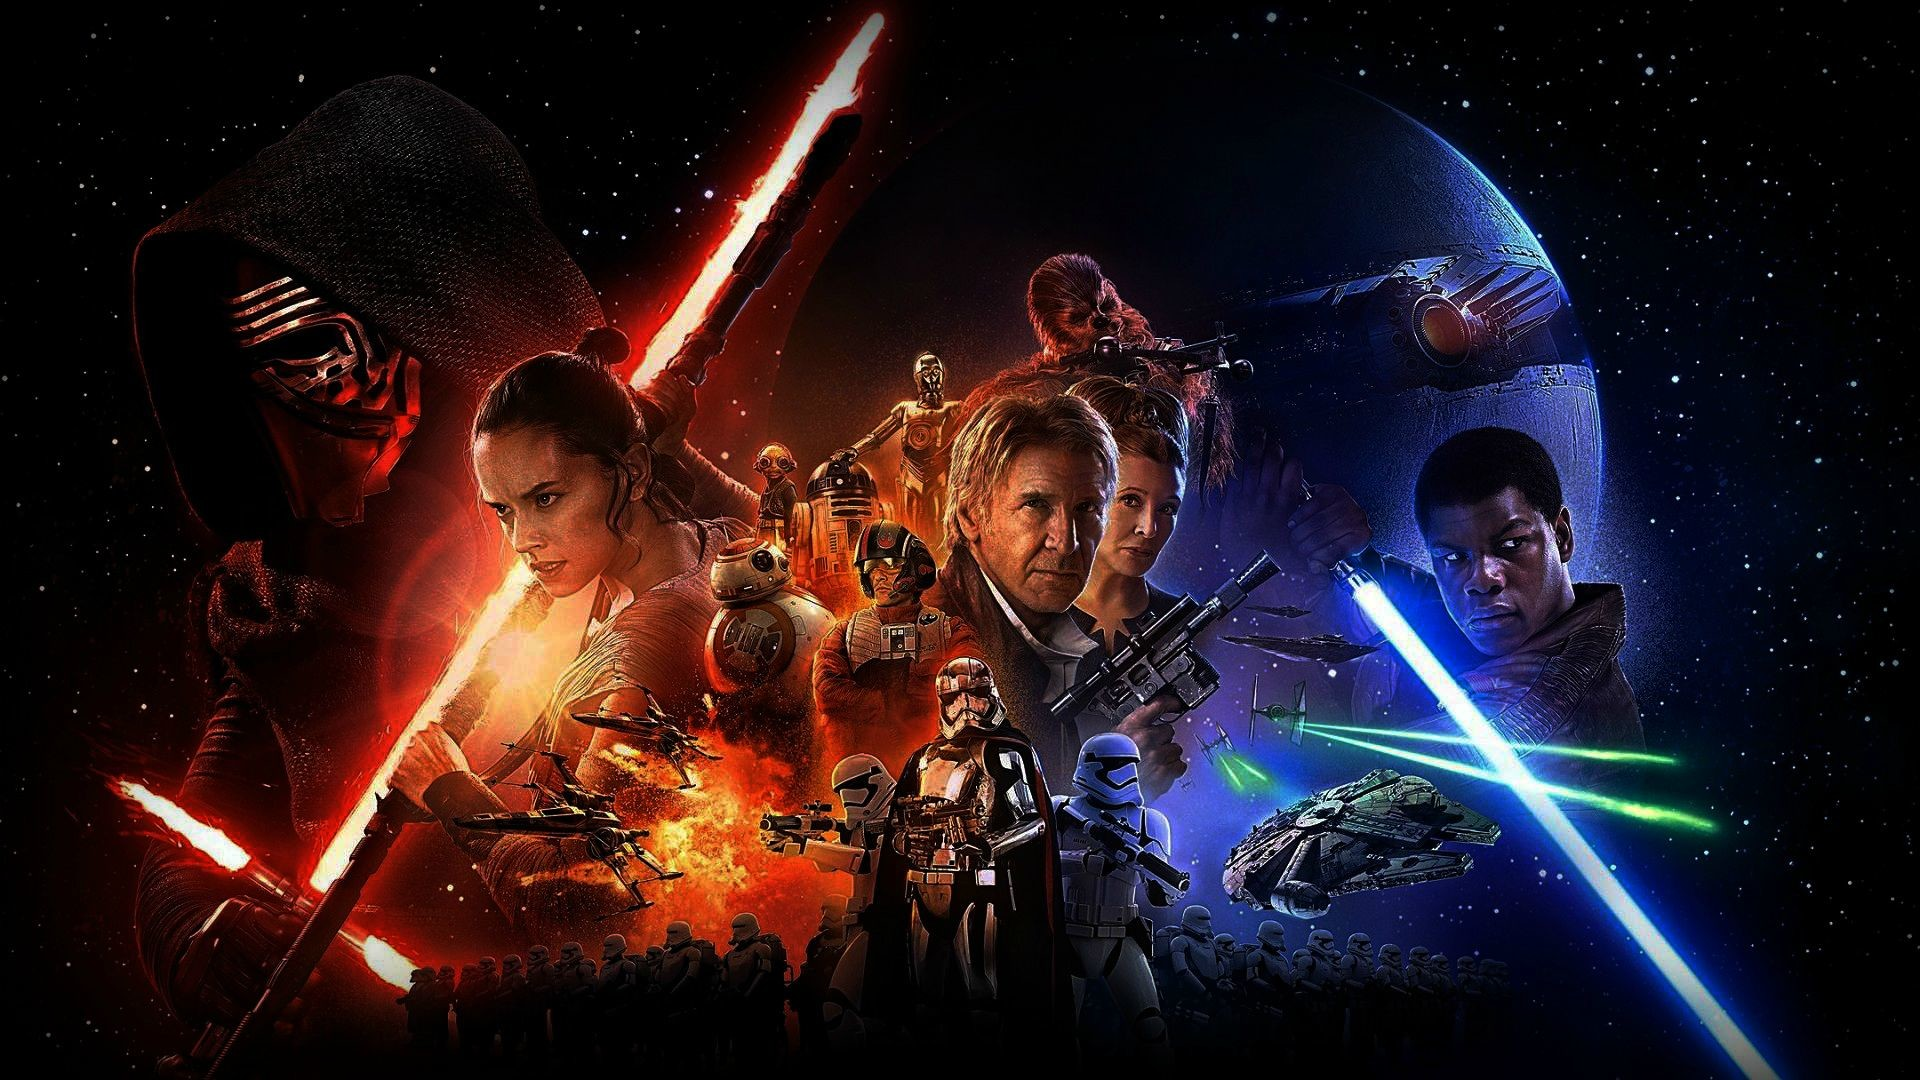 1920x1080 Wallpaper Weekends Bonus: Star Wars: The Force Awakens Wallpapers for Apple  Watch